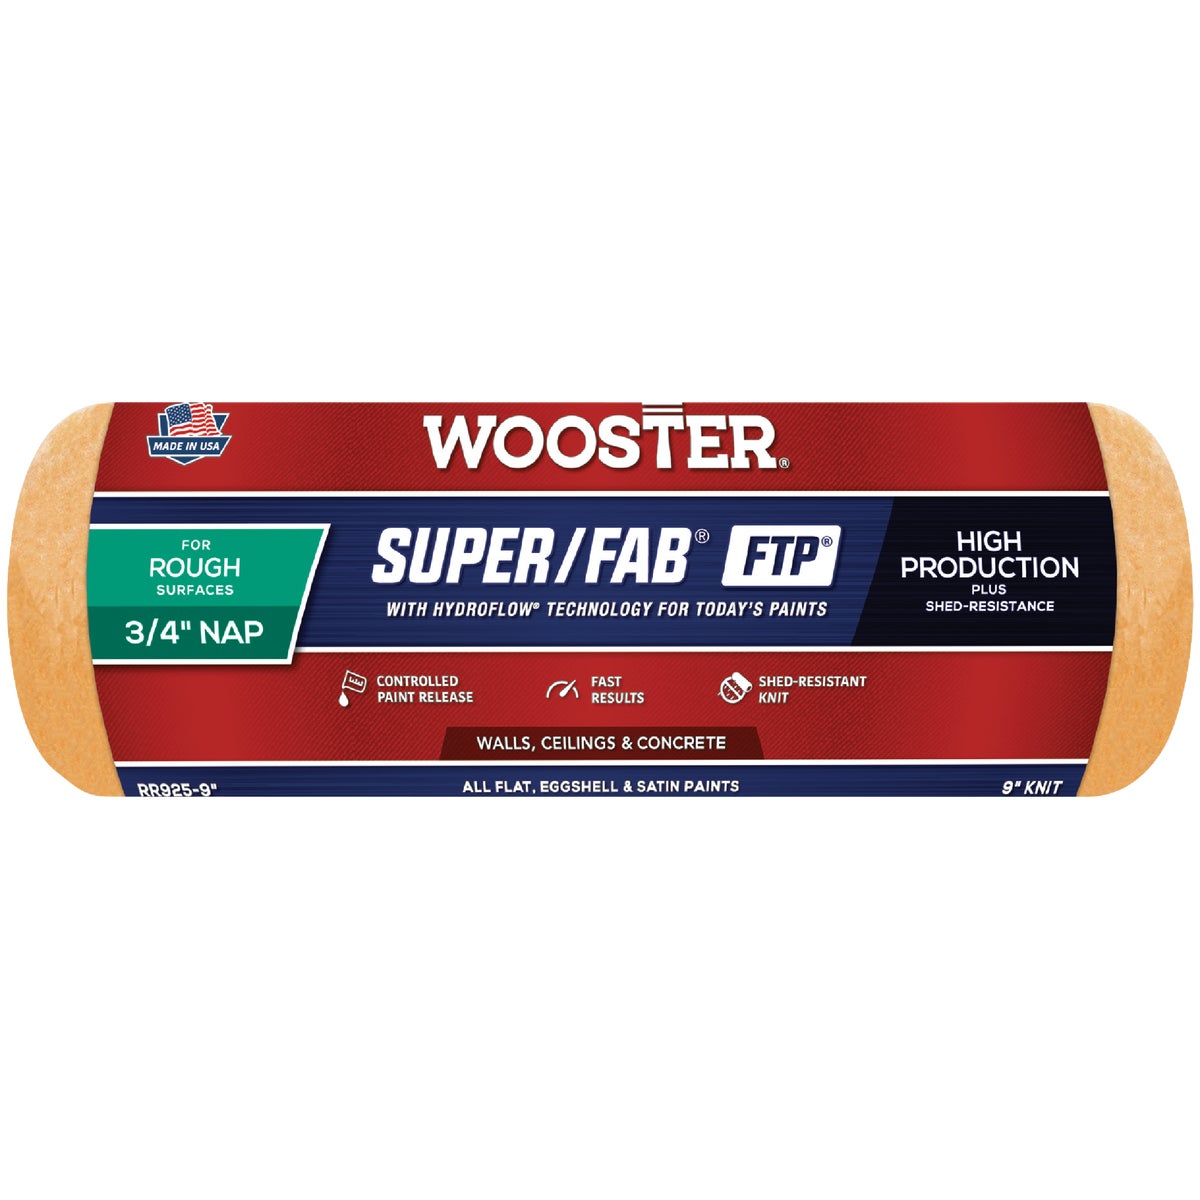 9X3/4 FTP ROLLER COVER - RR925-9 by Wooster Brush Co